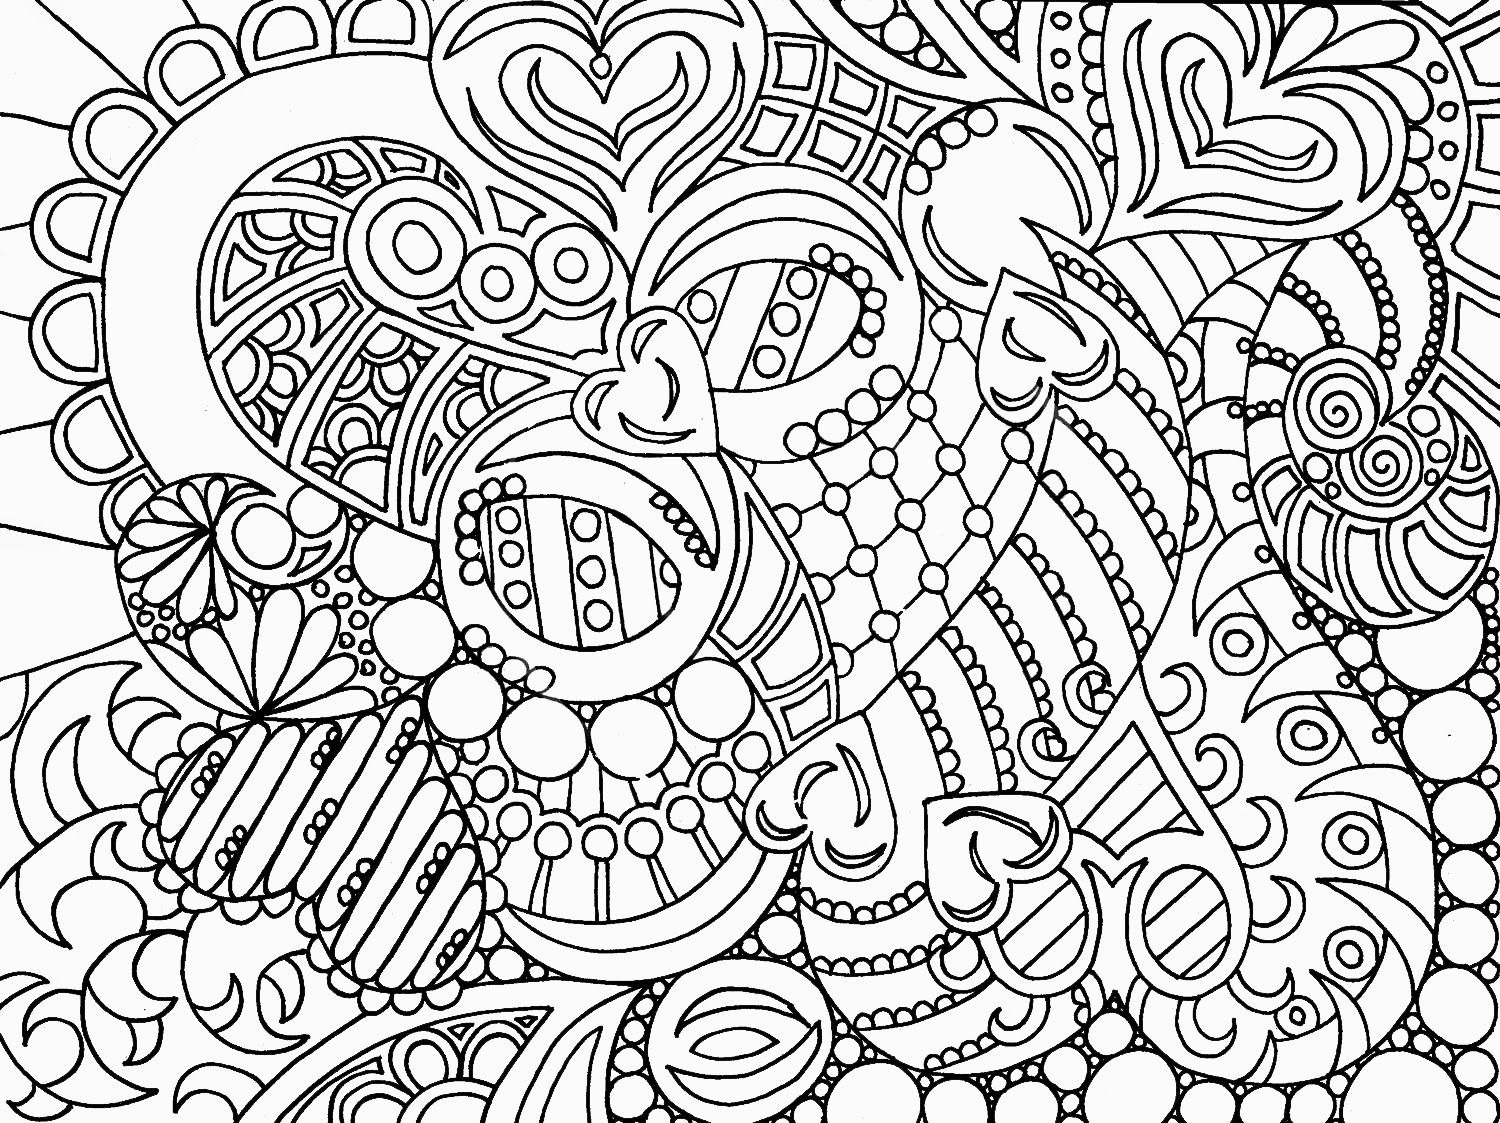 abstract coloring page # 3